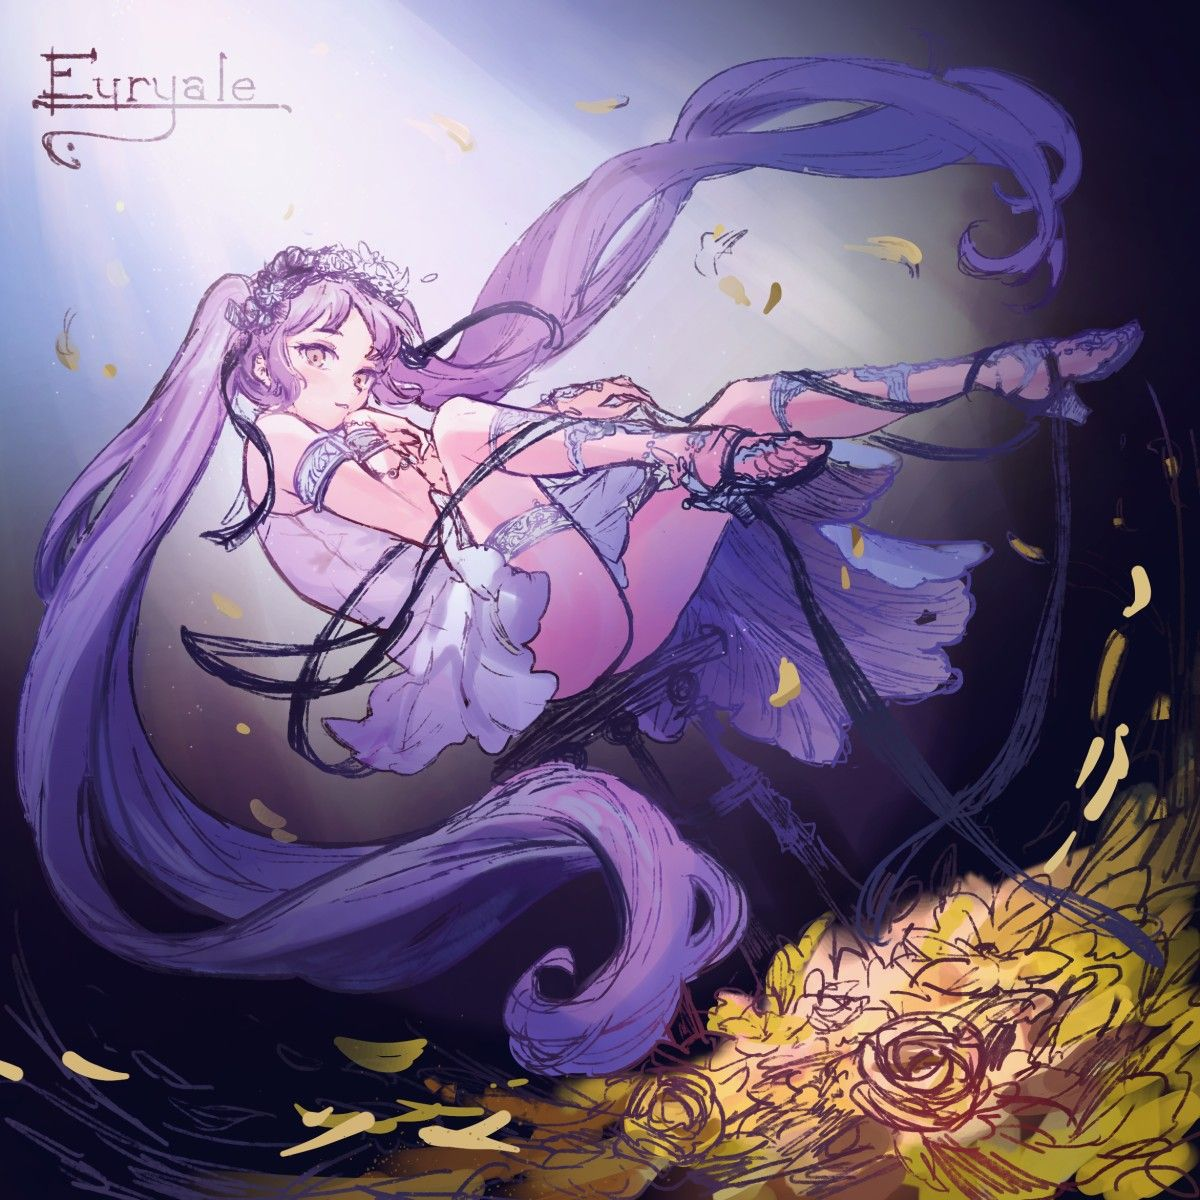 Pin by 🎆としお🎆 on Fate Fate stay night, Fate characters, Anime